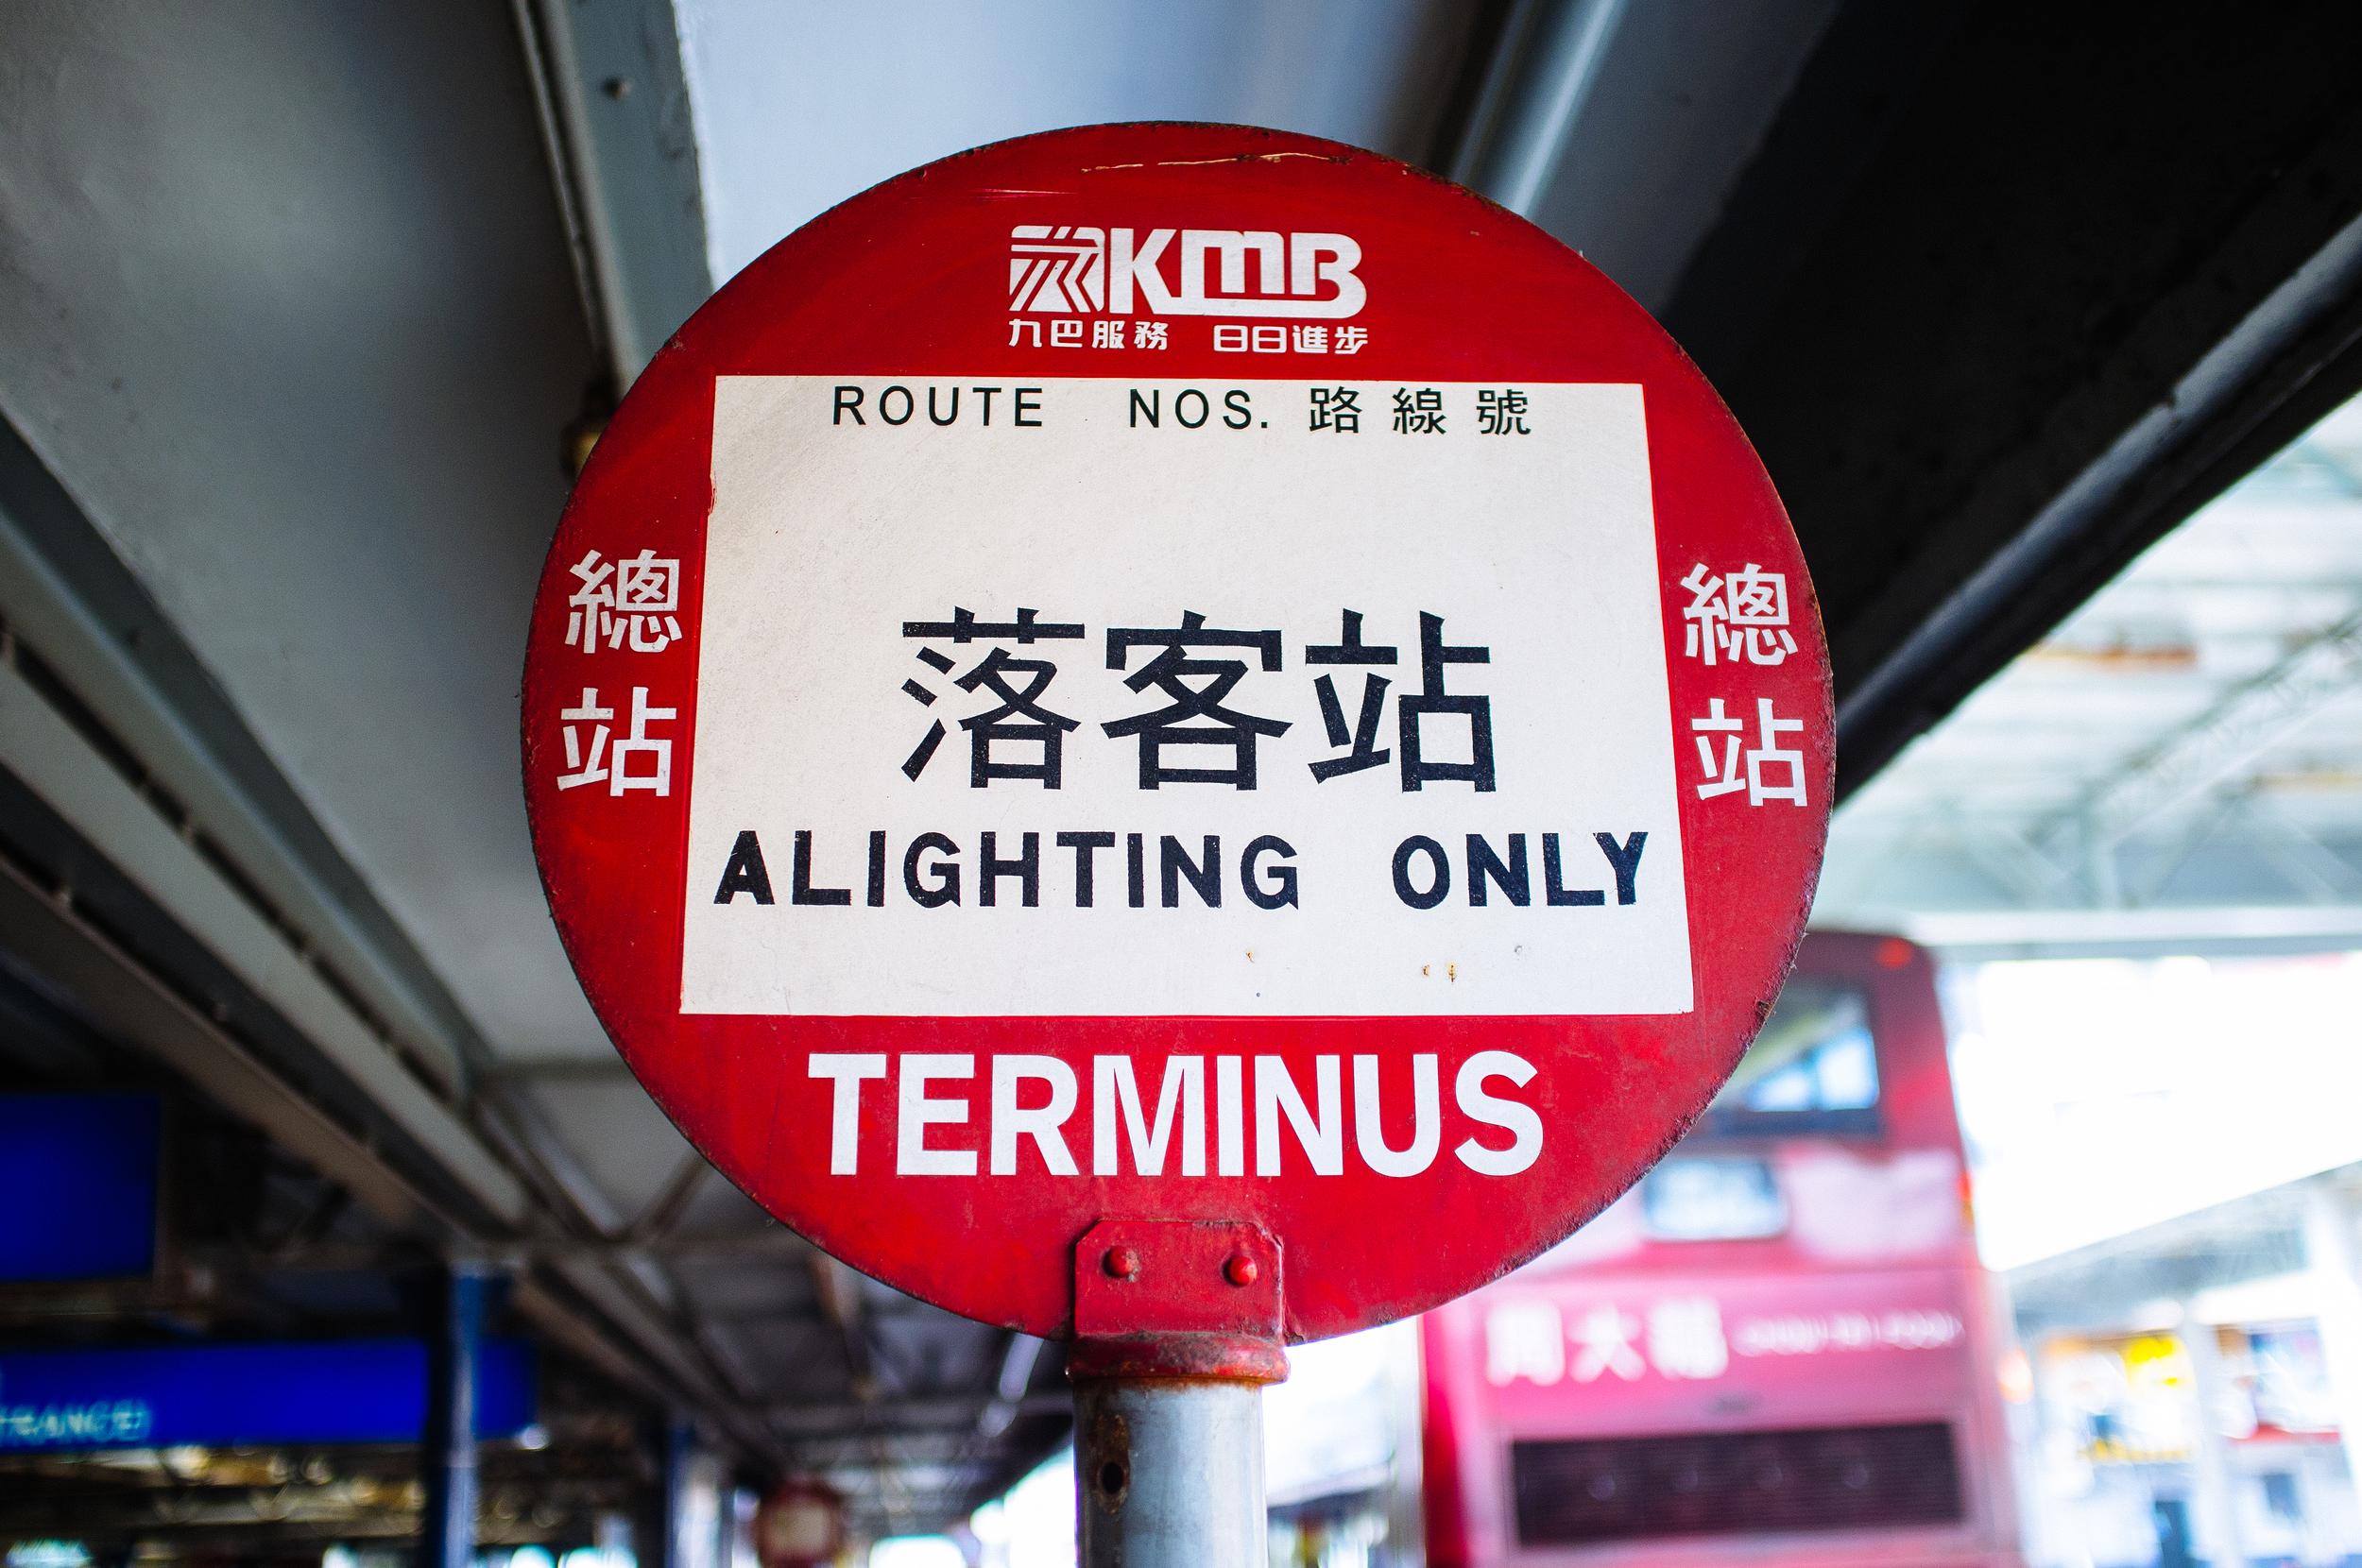 At first I thought this was Engrish, but it is just a continental term for 'getting off'.